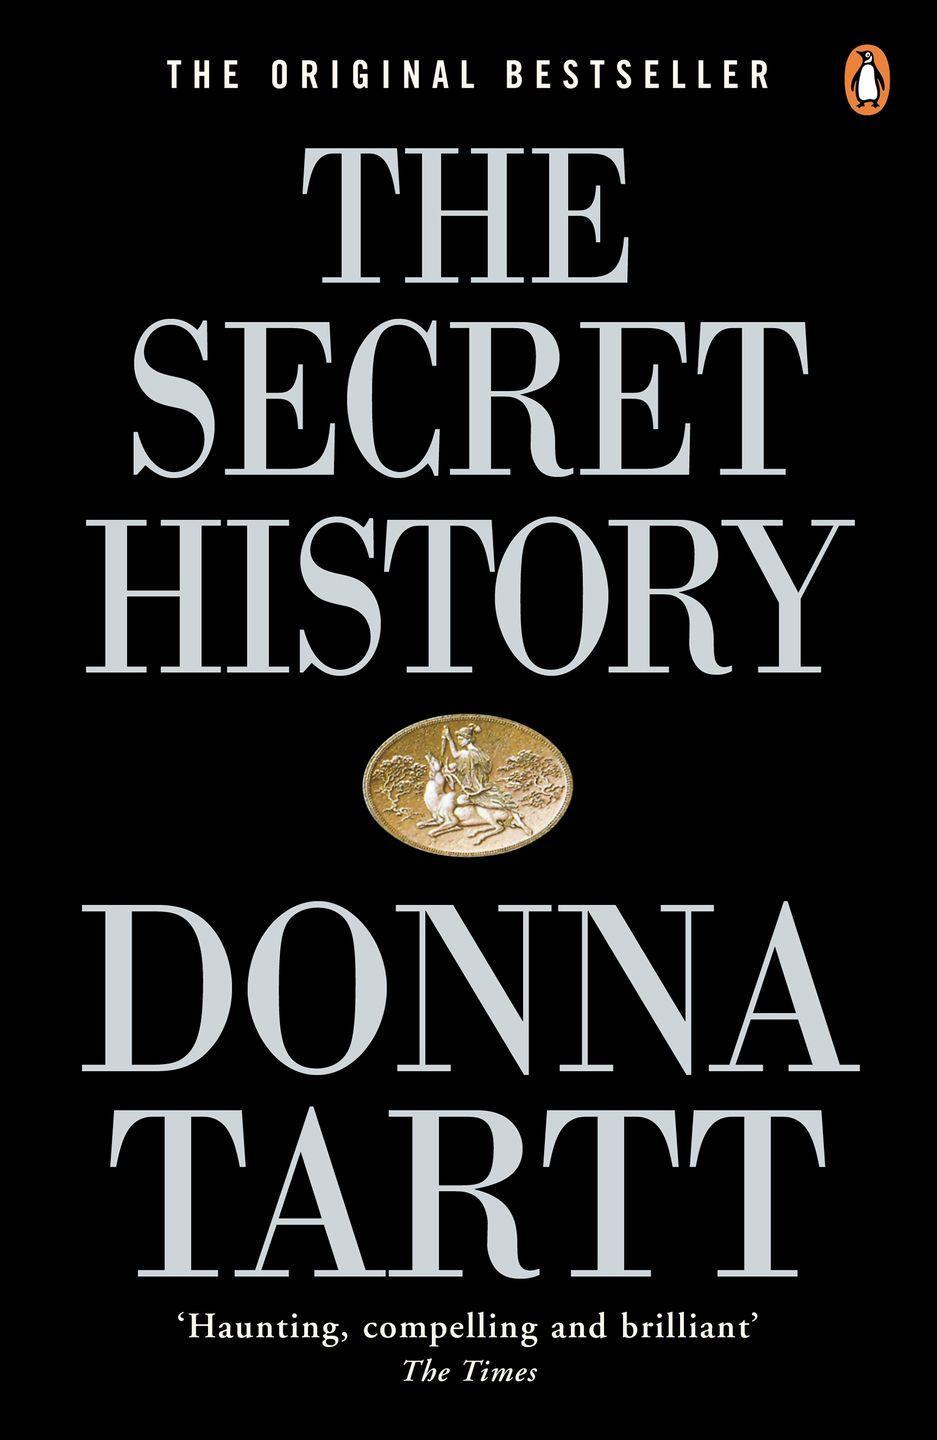 "<p><a class=""link rapid-noclick-resp"" href=""https://www.amazon.co.uk/s?k=donna+tartt+-+the+secret+history&adgrpid=58875991571&gclid=Cj0KCQjwoub3BRC6ARIsABGhnyb6w5ovm58_KMNSJC6ydasiBN6FYTzLj6ippmR8y3MfEb051HDy-NoaAqDnEALw_wcB&hvadid=259070481540&hvdev=c&hvlocphy=9073583&hvnetw=g&hvqmt=e&hvrand=2983511436475598583&hvtargid=kwd-315839935560&hydadcr=24460_1816155&tag=hearstuk-yahoo-21&ref=pd_sl_9pifzhfwj3_e&ascsubtag=%5Bartid%7C1927.g.32575891%5Bsrc%7Cyahoo-uk"" rel=""nofollow noopener"" target=""_blank"" data-ylk=""slk:SHOP NOW"">SHOP NOW</a></p><p>From the start of The Secret History, the reader knows who has been murdered and who by; and that won't stop you reading, desperate to stay immersed in this world of obsessive elite students of Ancient Greek whose exploration of the past means they suddenly find themselves in over their heads. Donna Tartt's debut has one of the most idiosyncratic plots imaginable, and yet her mix of jealousy, scholarship and regret makes it all feel not only plausible but inevitable.</p>"